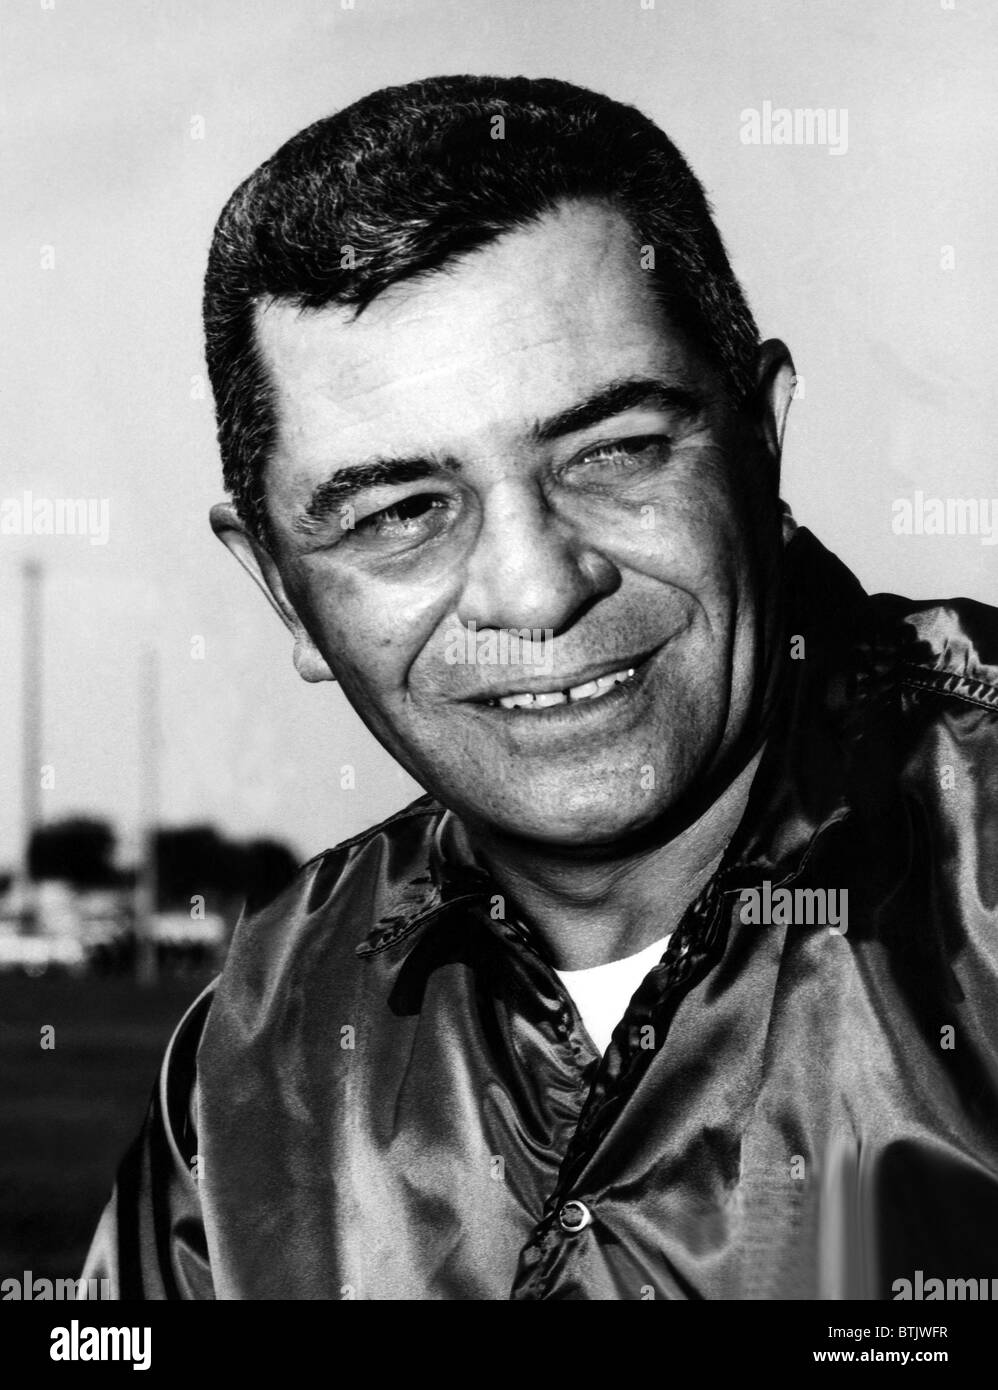 Vince Lombardi, (1913-1970), General manager of the Green Bay Packers and one of the most successful head coaches - Stock Image